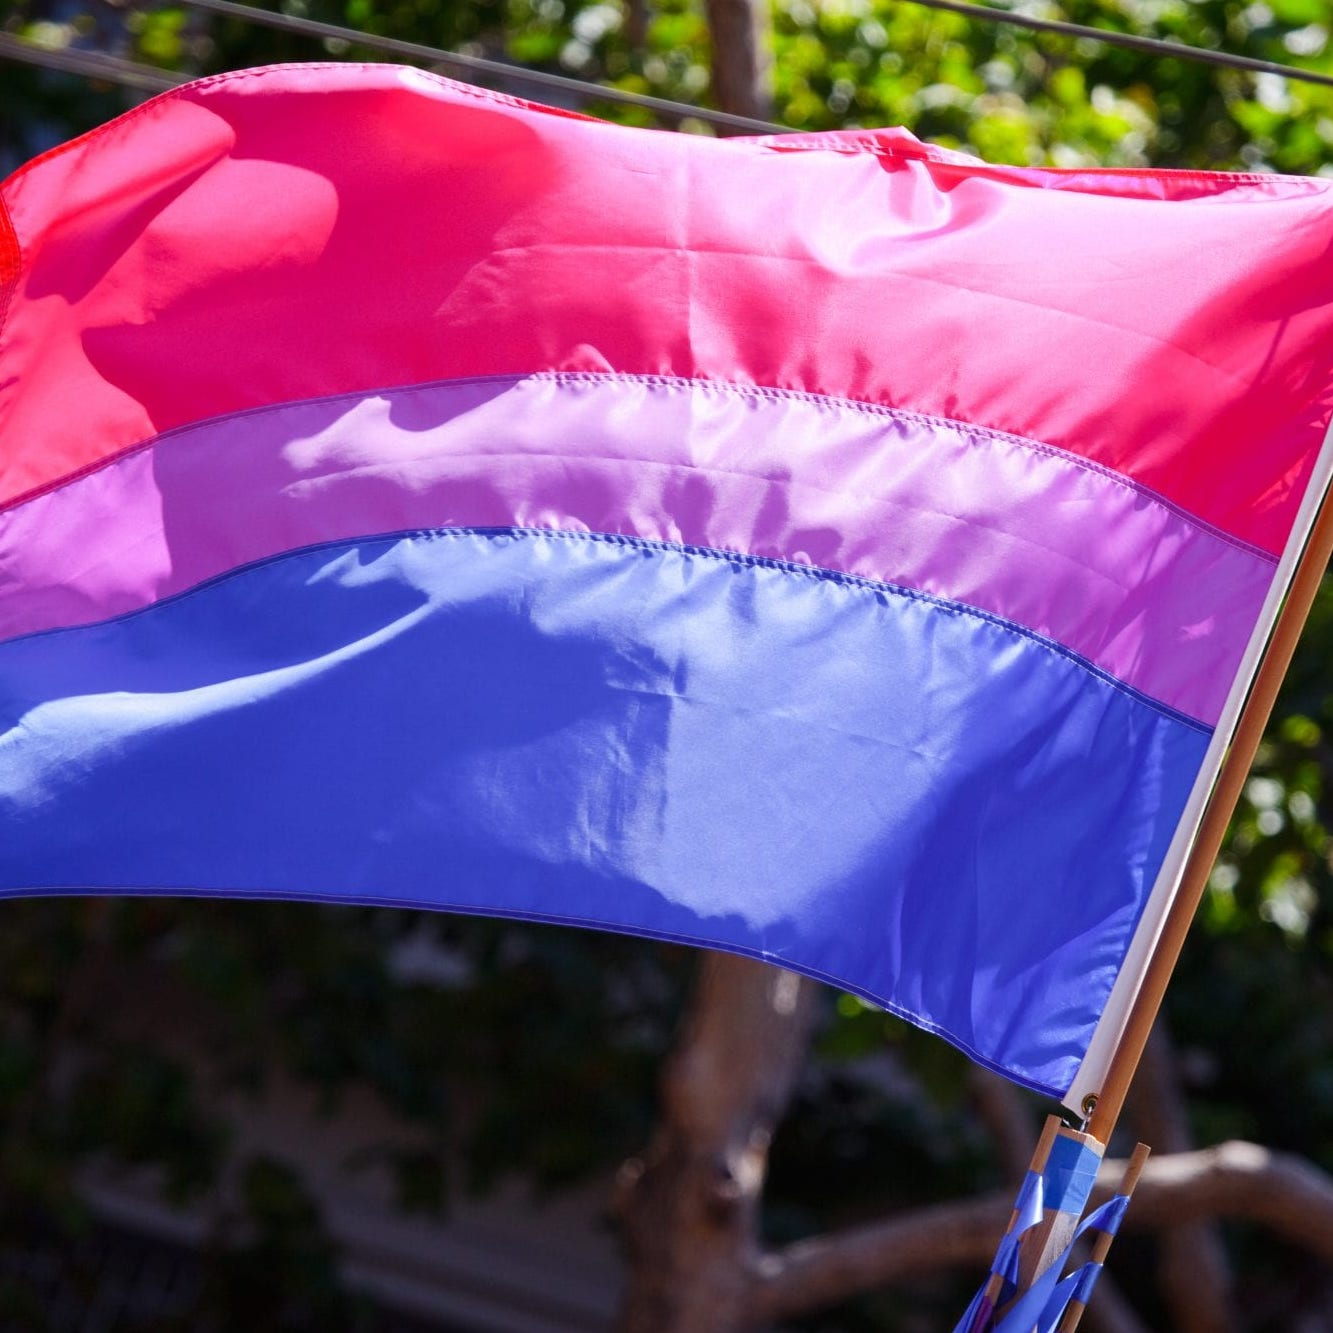 I'm a proud bi woman - And I'm actively involved in LGBTQ+ advocacy.